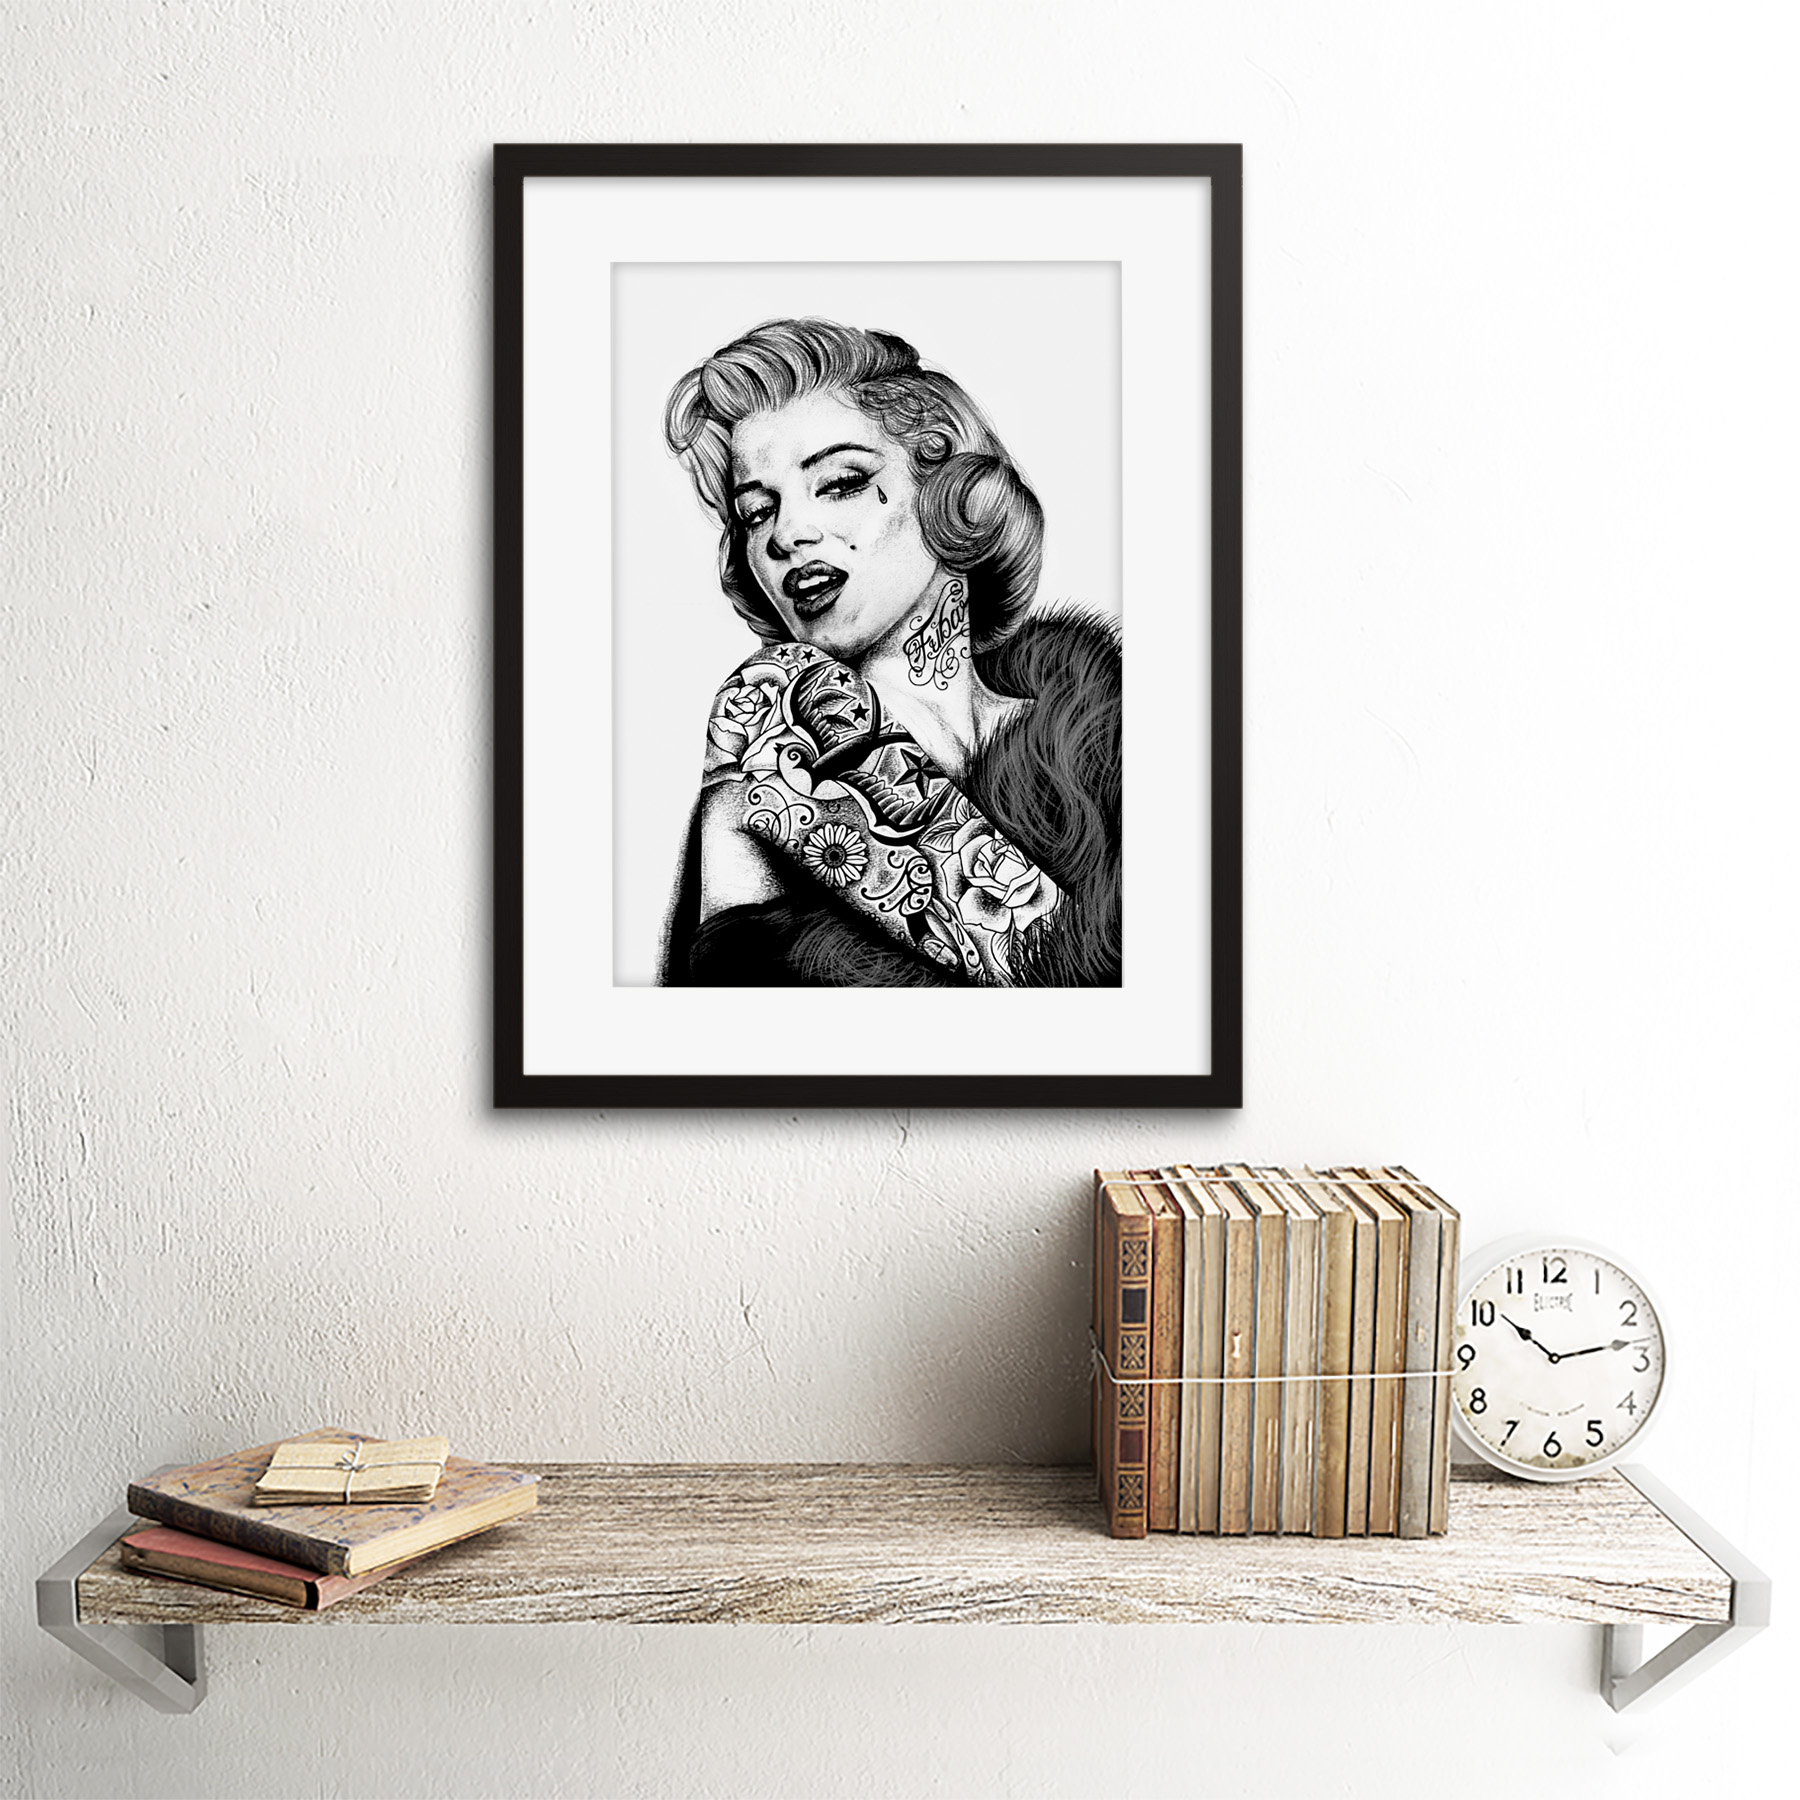 Marilyn Monroe Tattoo Inked Ikon Icon W Maguire Framed Wall Art Print 12x16 In Ebay